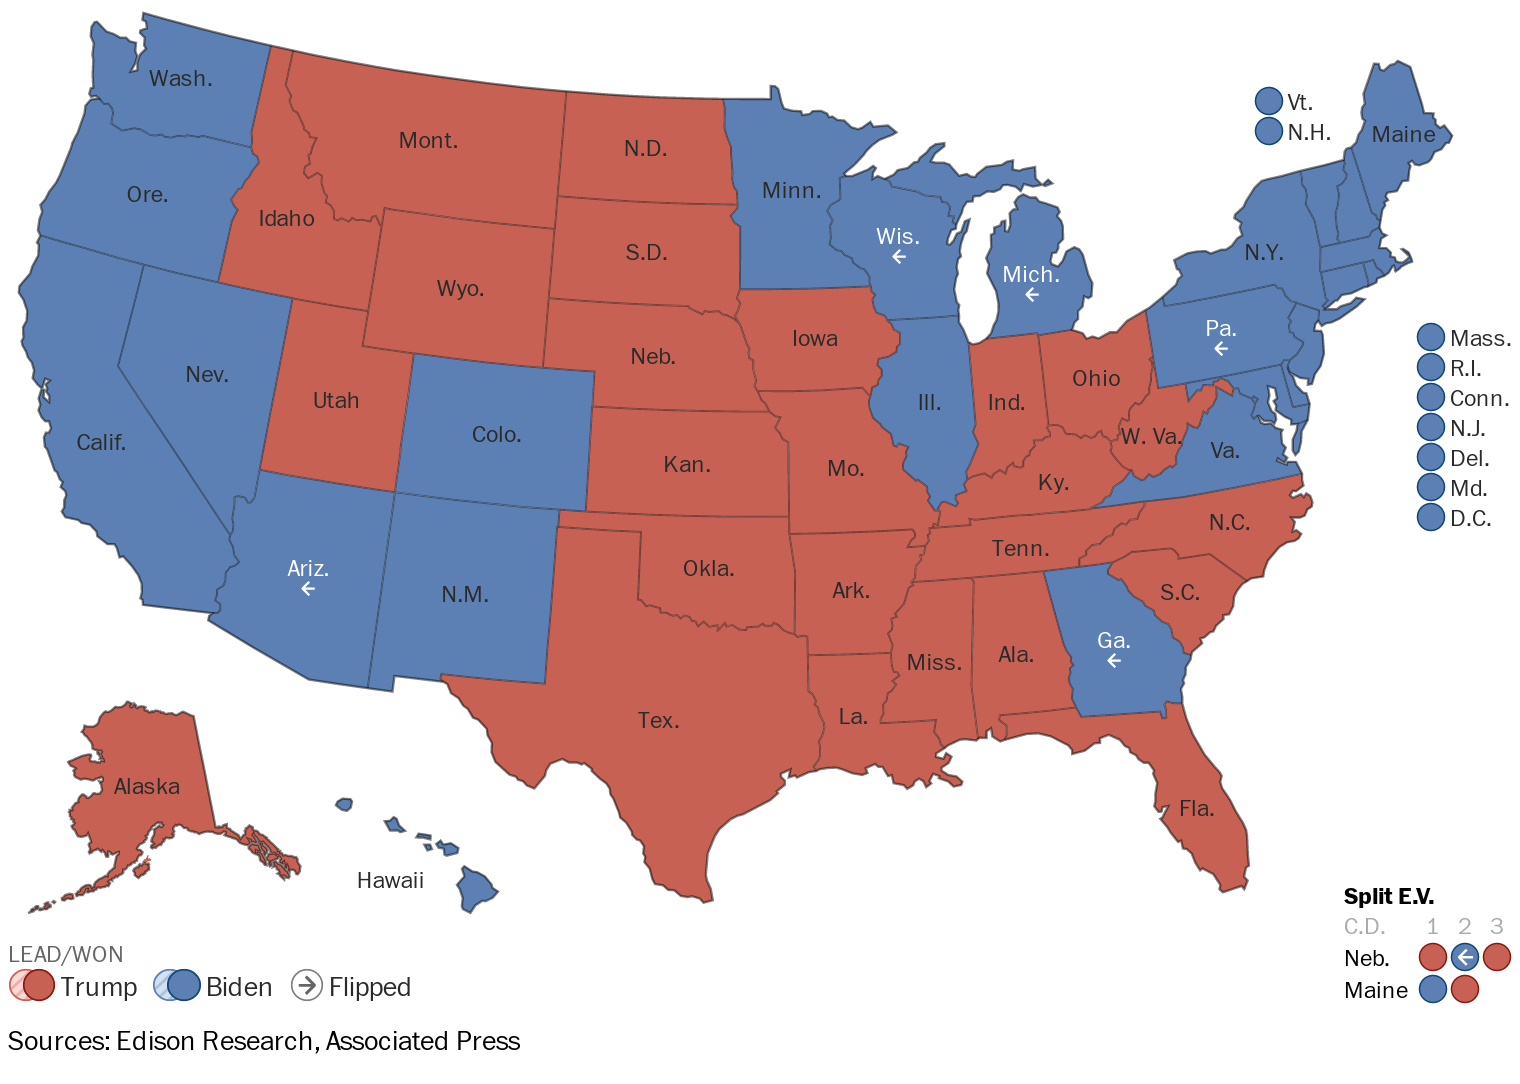 A map showing which states are leading or won by Joe Biden or Donald Trump.